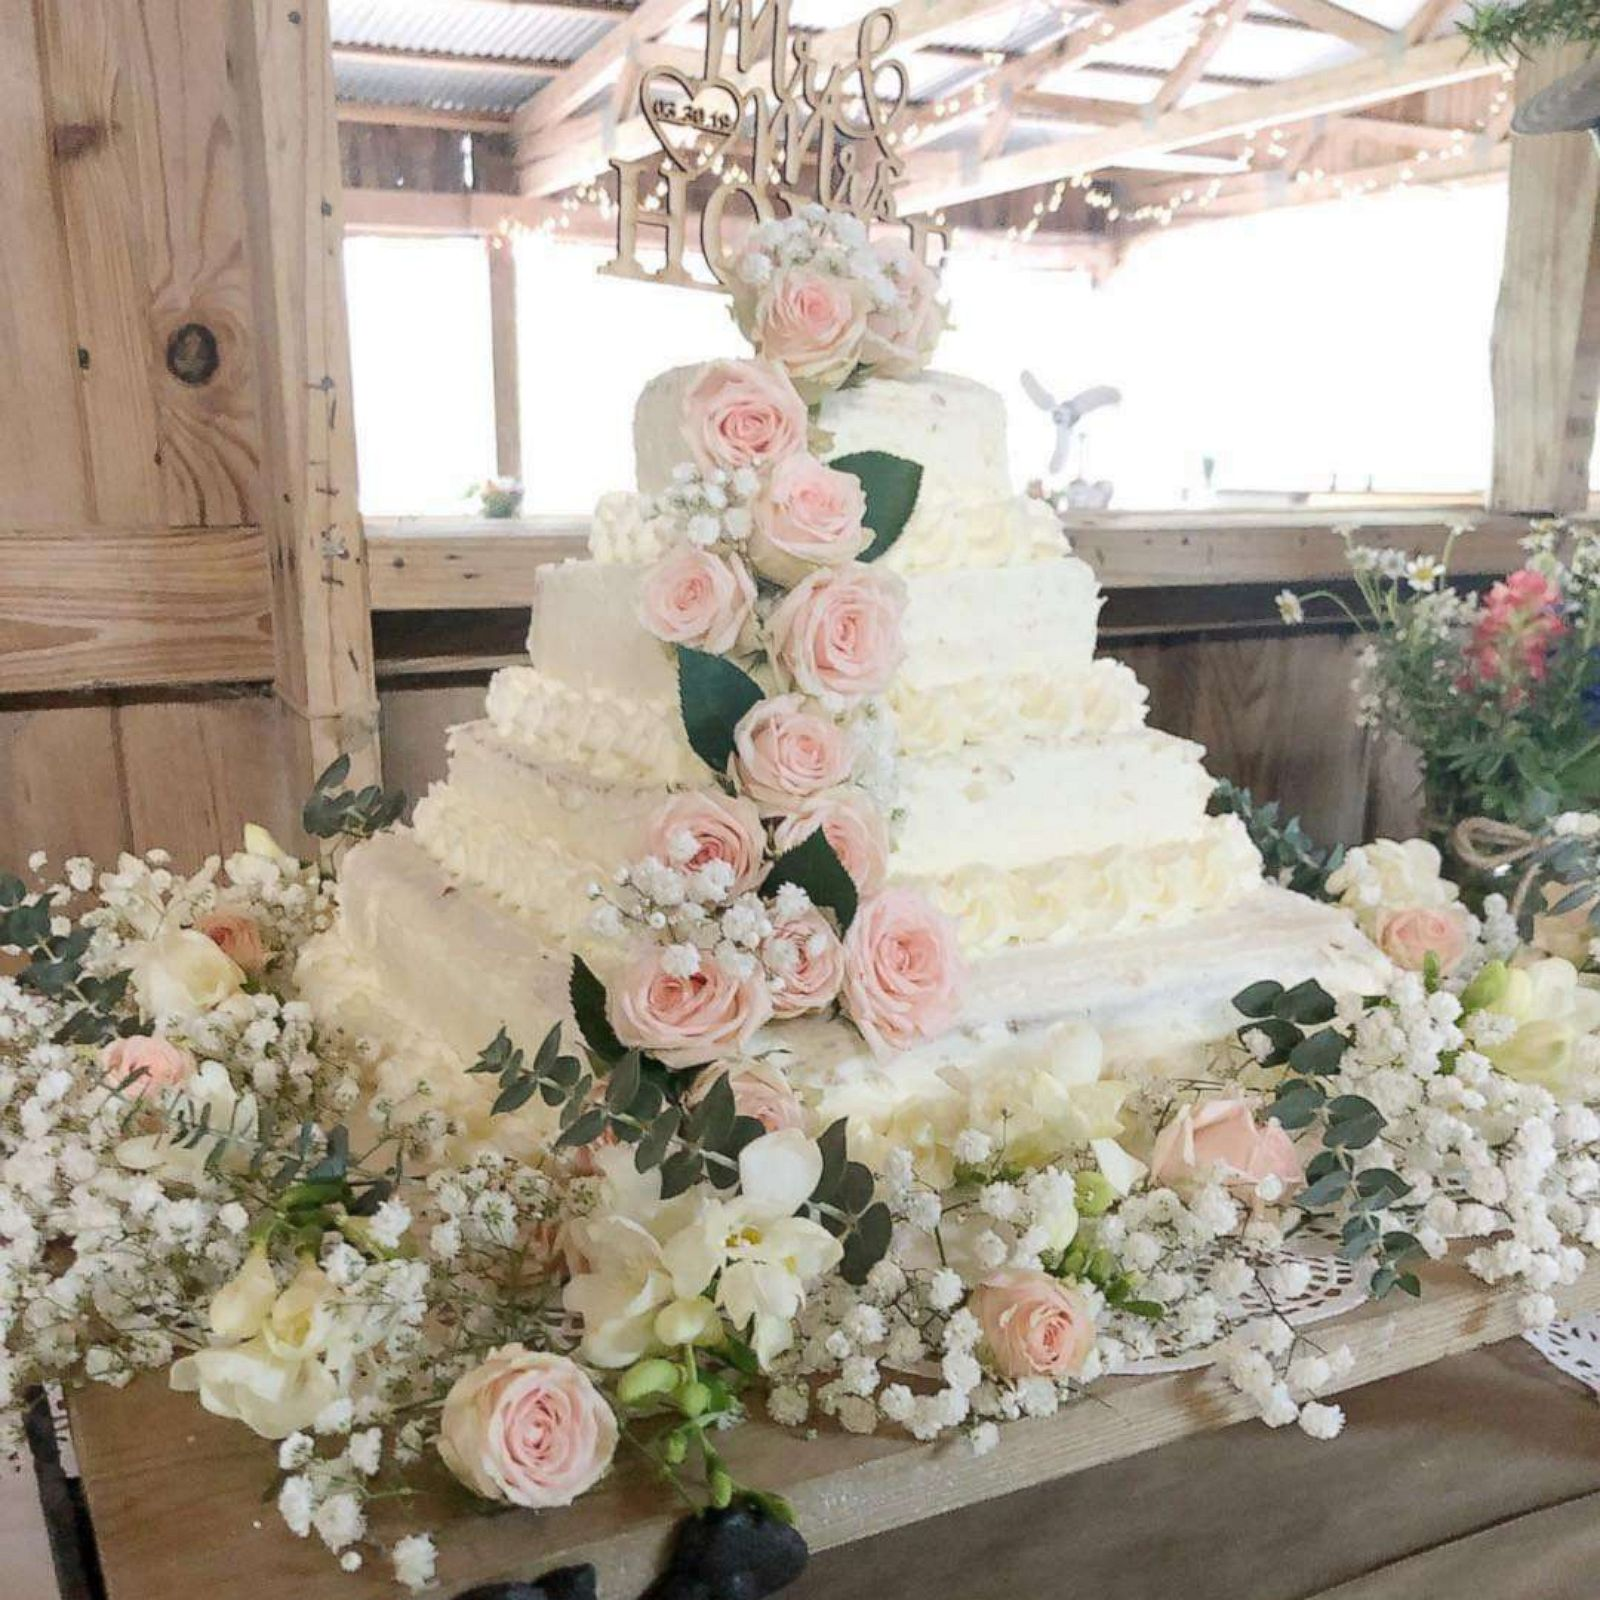 How To Make A Wedding Cake.This Diy Costco Wedding Cake Hack With Trader Joe S Flowers Only